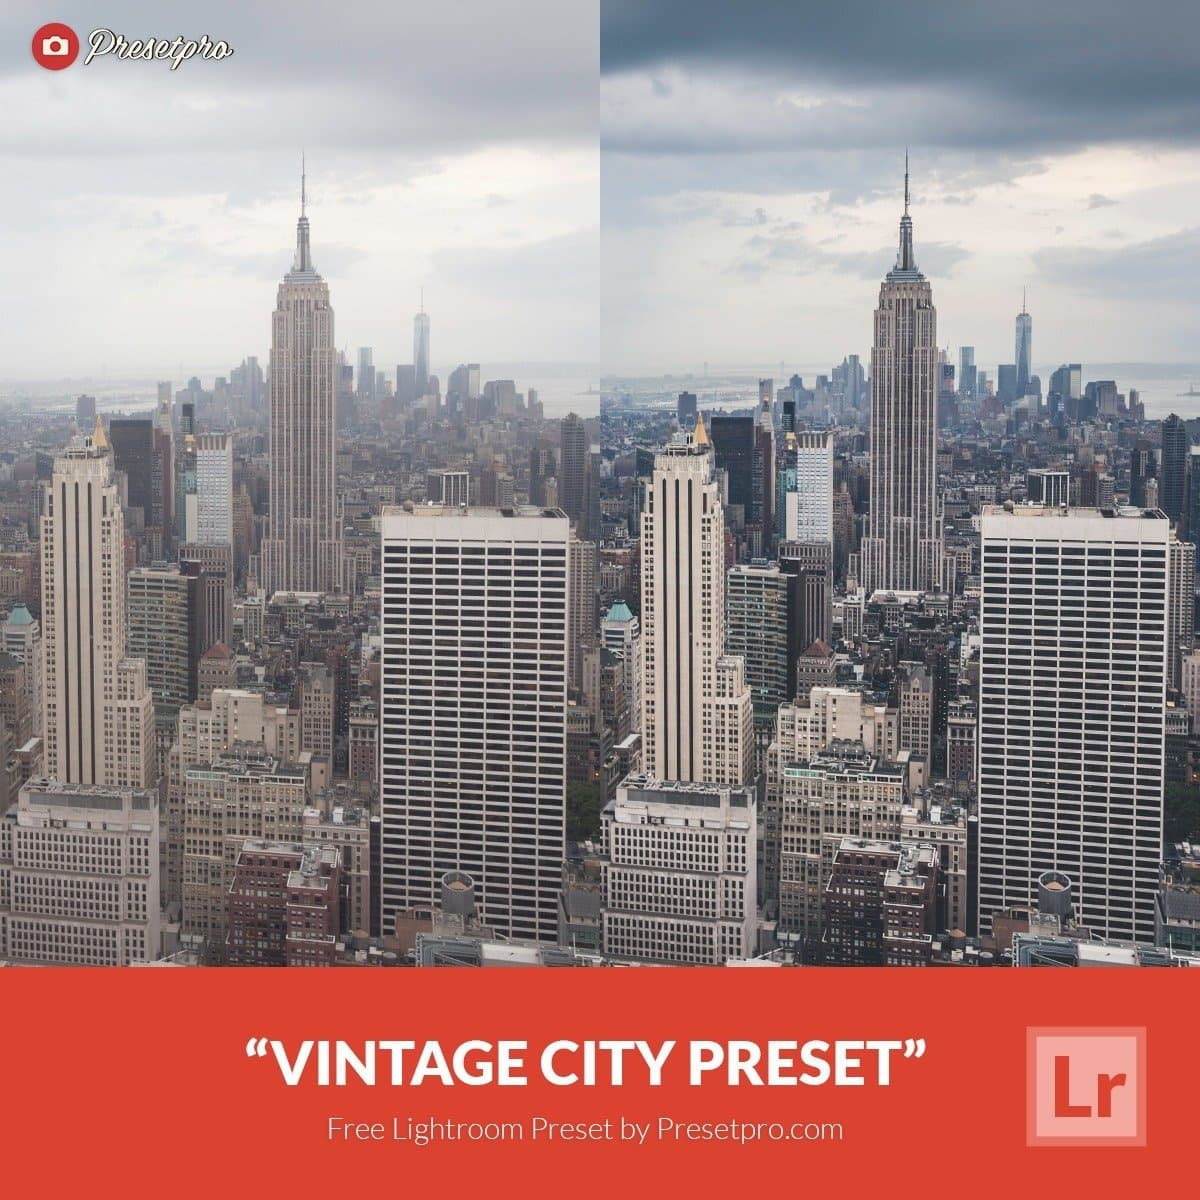 Free-Lightroom-Preset-Vintage-City-Presetpro.com